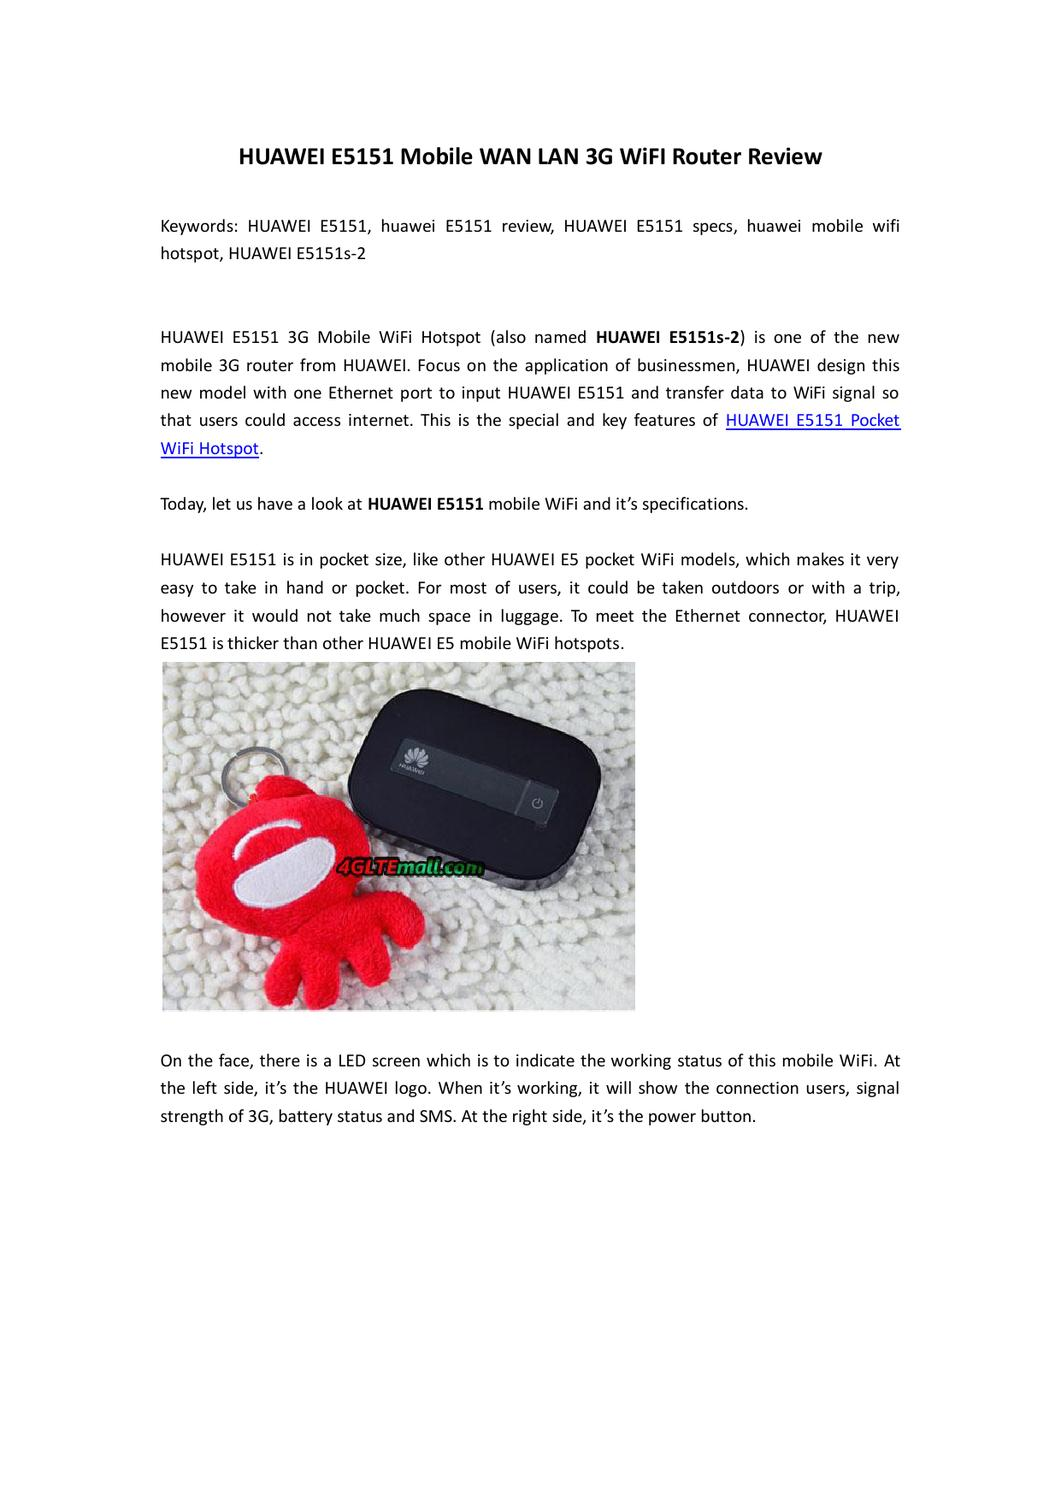 HUAWEI E5151 Mobile WAN LAN 3G WiFI Router Review by Lte Mall - issuu